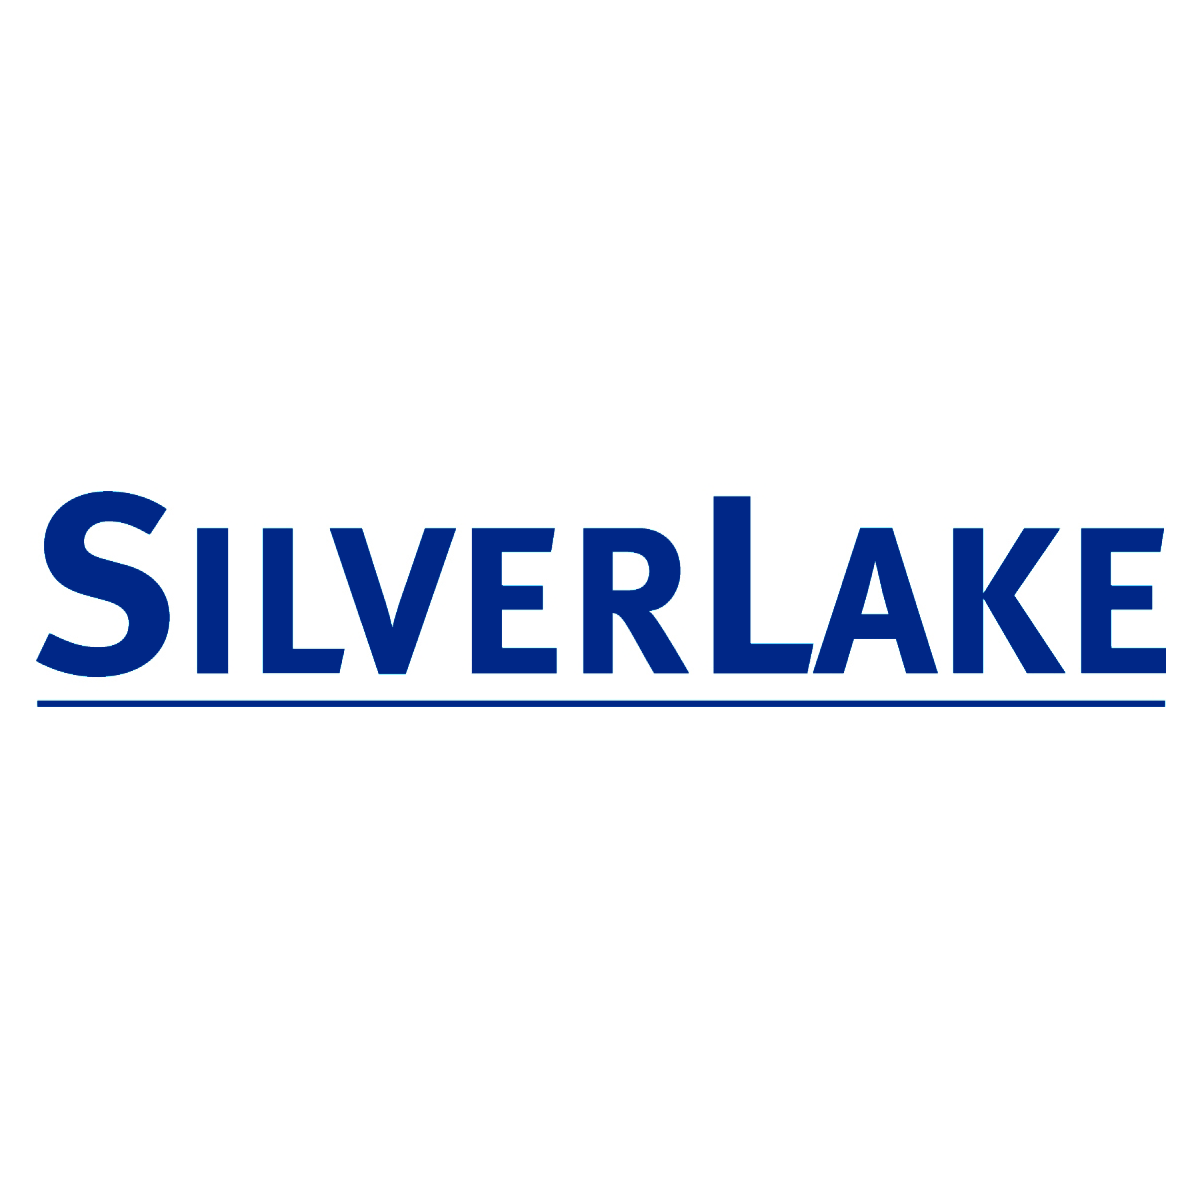 Silver Lake Logo - blue on a white background